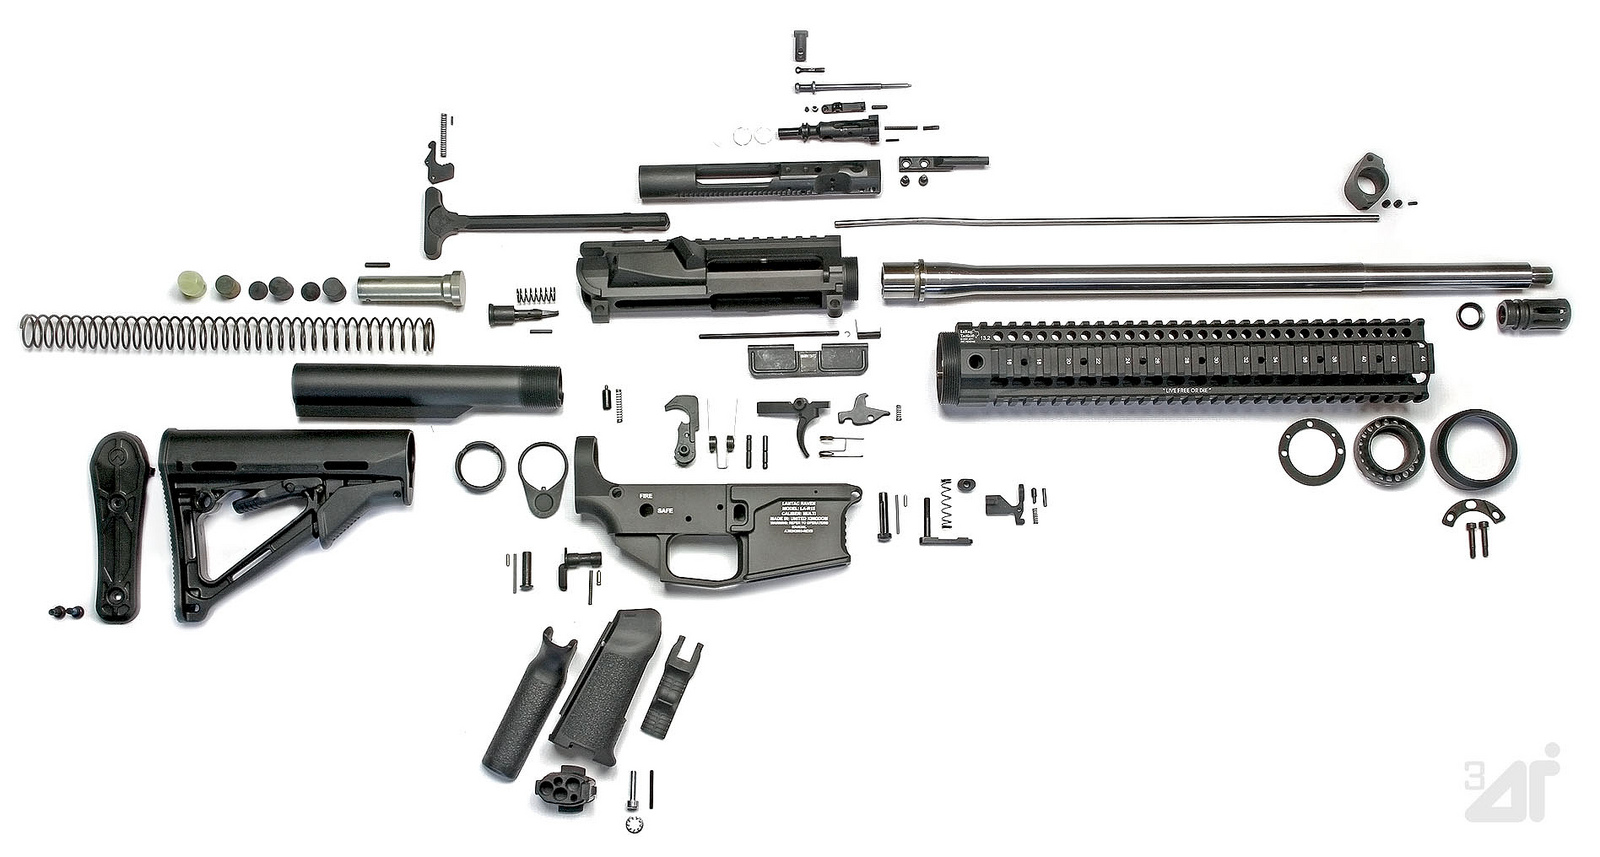 m16 exploded diagram telecaster 5 way super switch wiring peninsula guns and tactical overview ar 15 rifle build guide alt